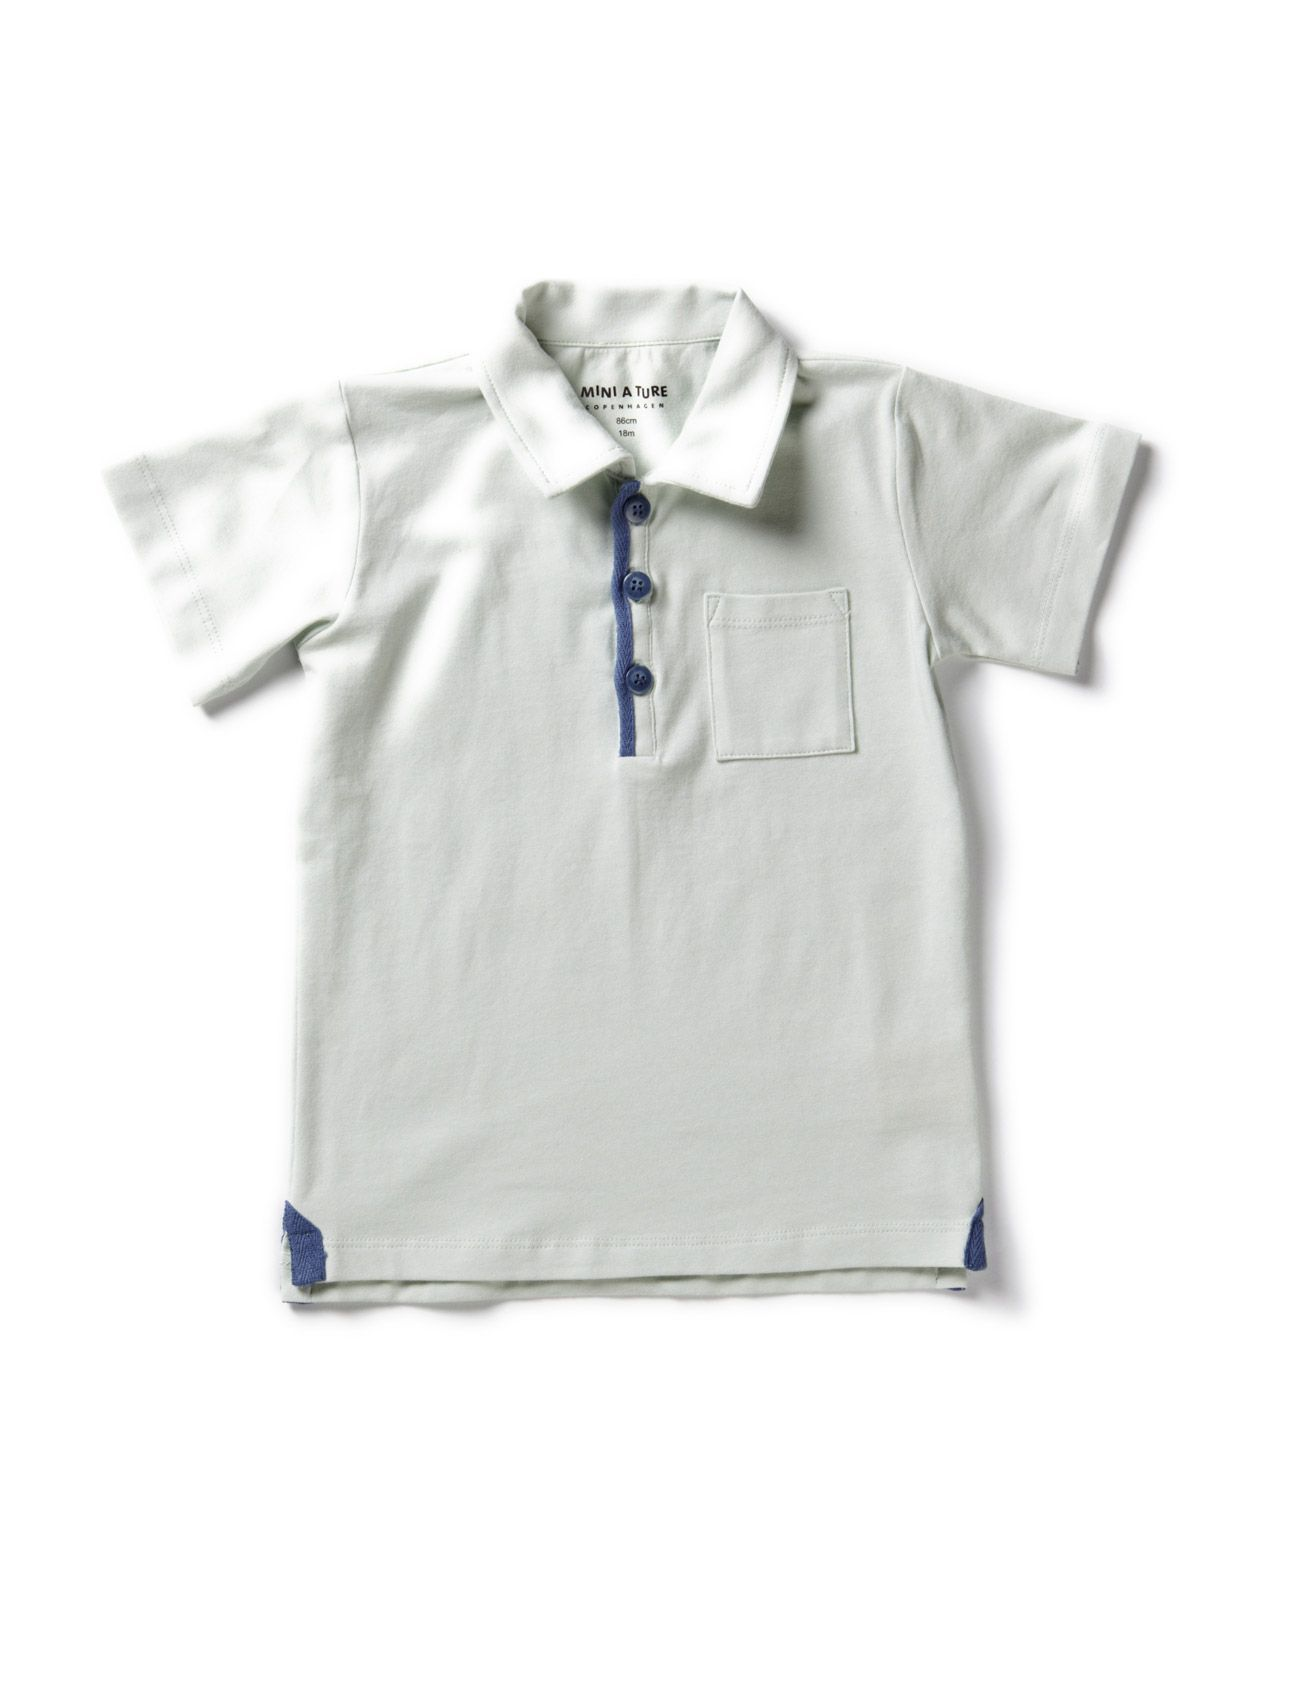 Mini A Ture Ketil, Baby Polo